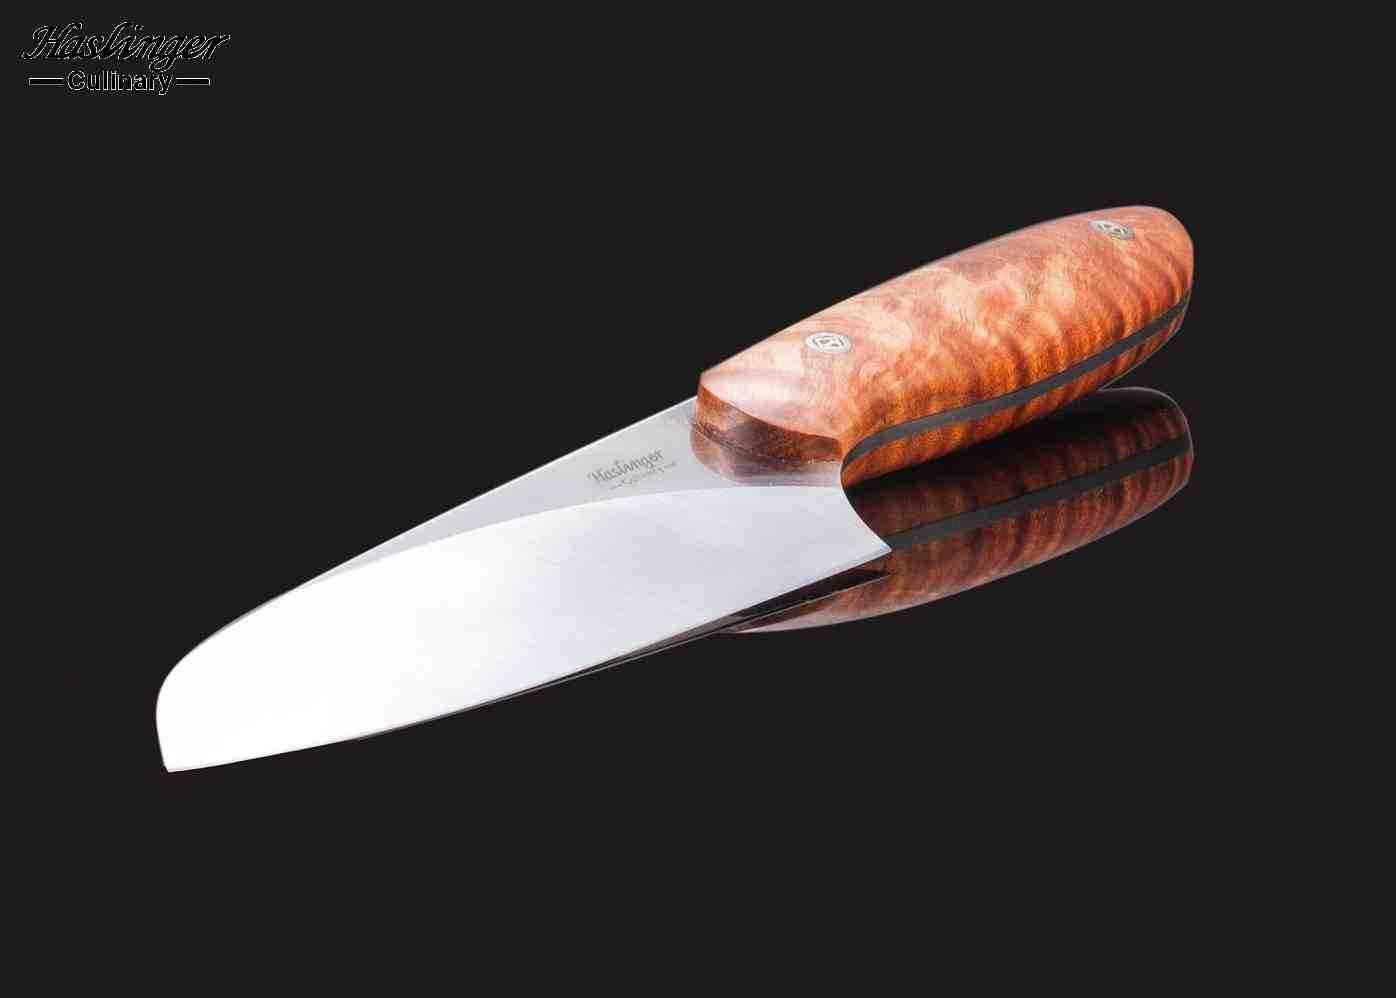 Evolution Chef Knife 142 mm Blade with Blond Maple Root Burl Handle